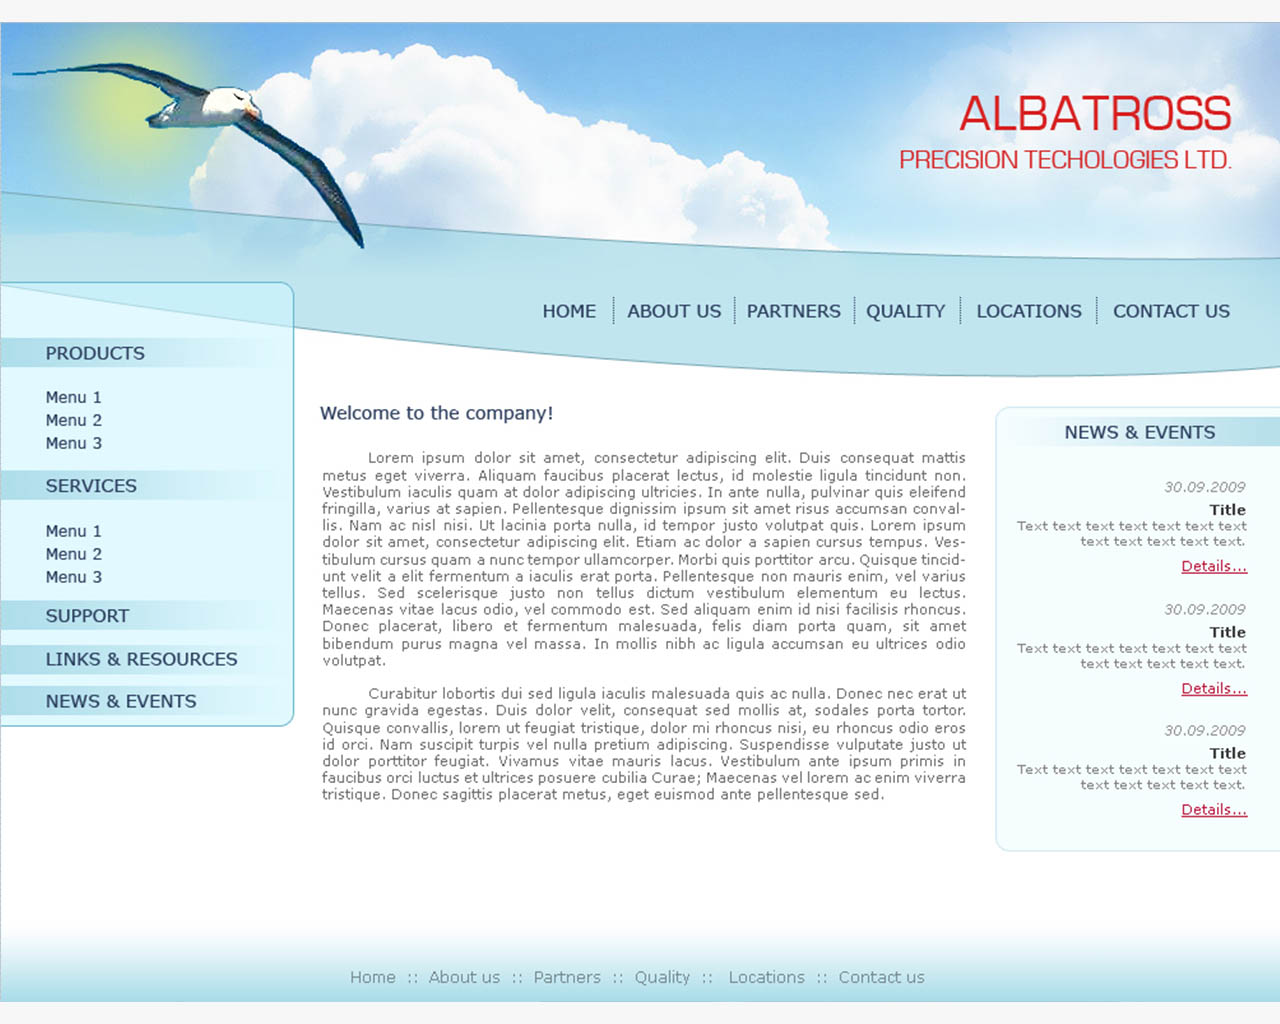 Albatross Precision Technologies Ltd